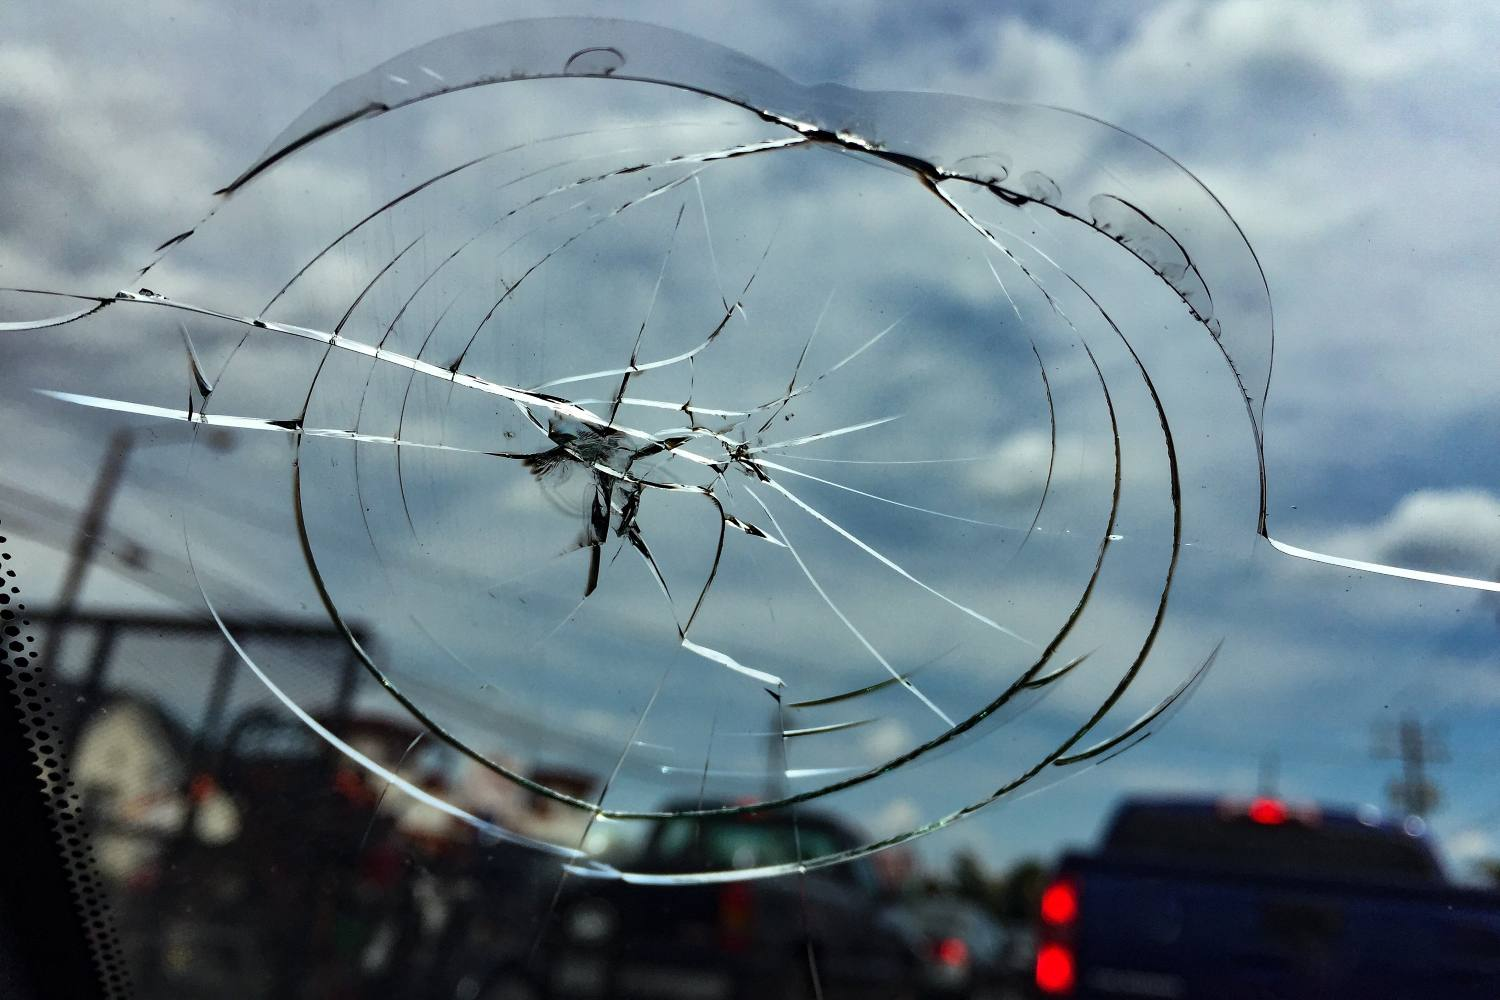 How to Repair a Car Window Crack or Chip